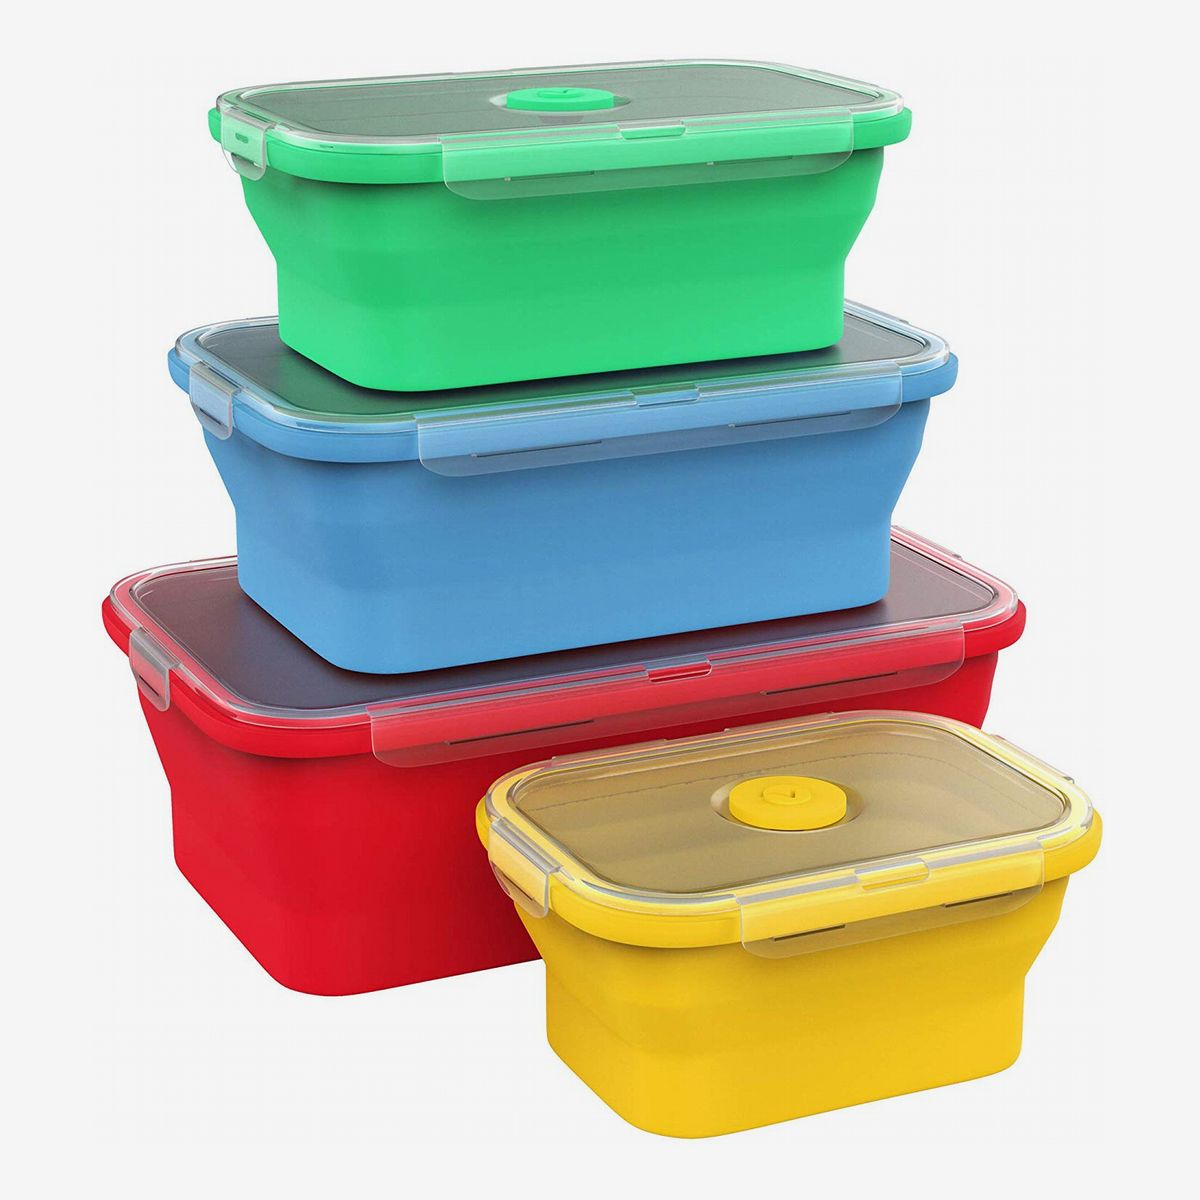 15 Best Food-Storage Containers 2020 | The Strategist | New York Magazine